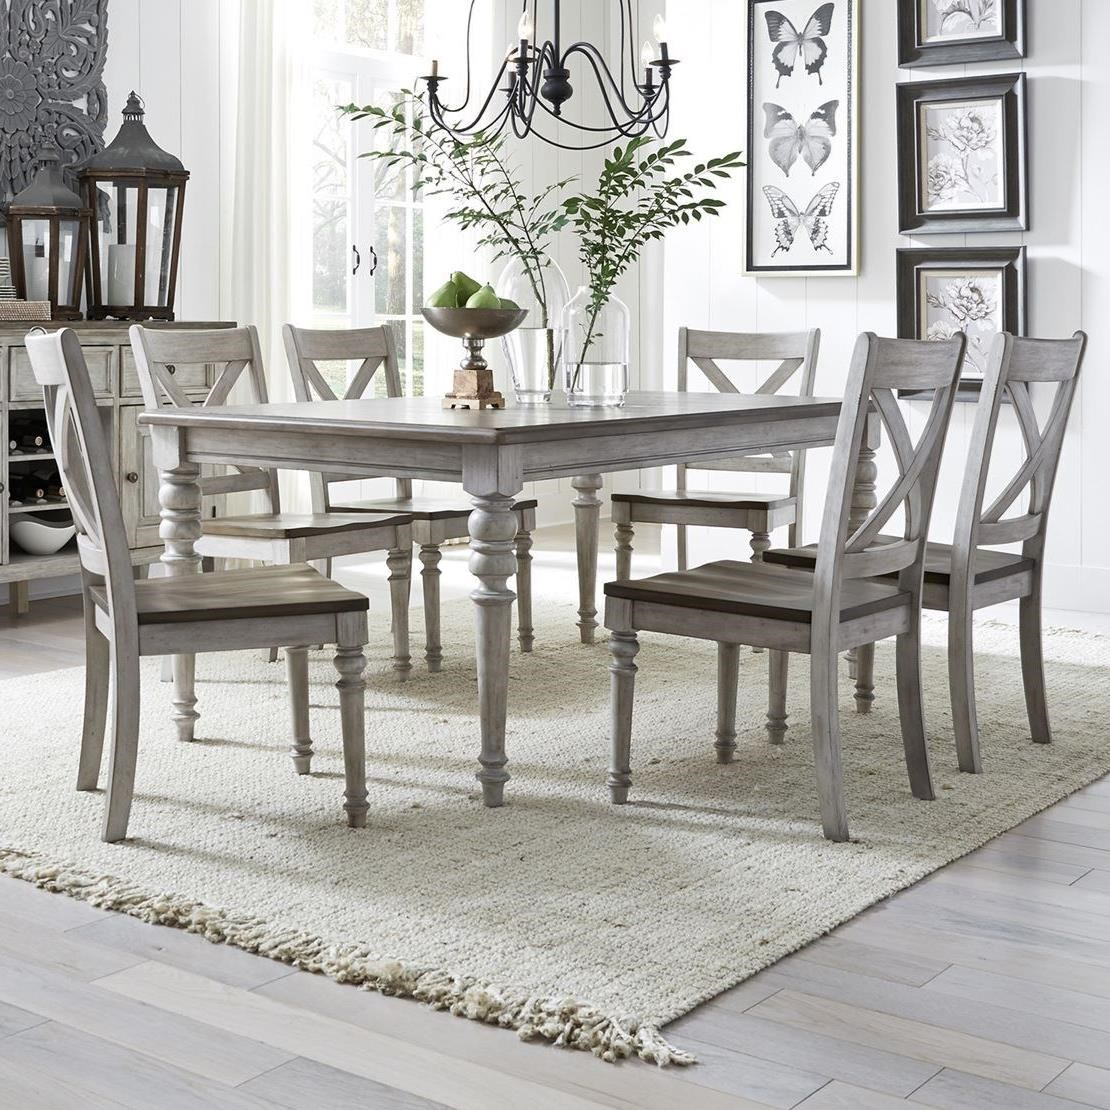 Cottage Lane 7-Piece Rectangular Table Set by Liberty Furniture at Northeast Factory Direct